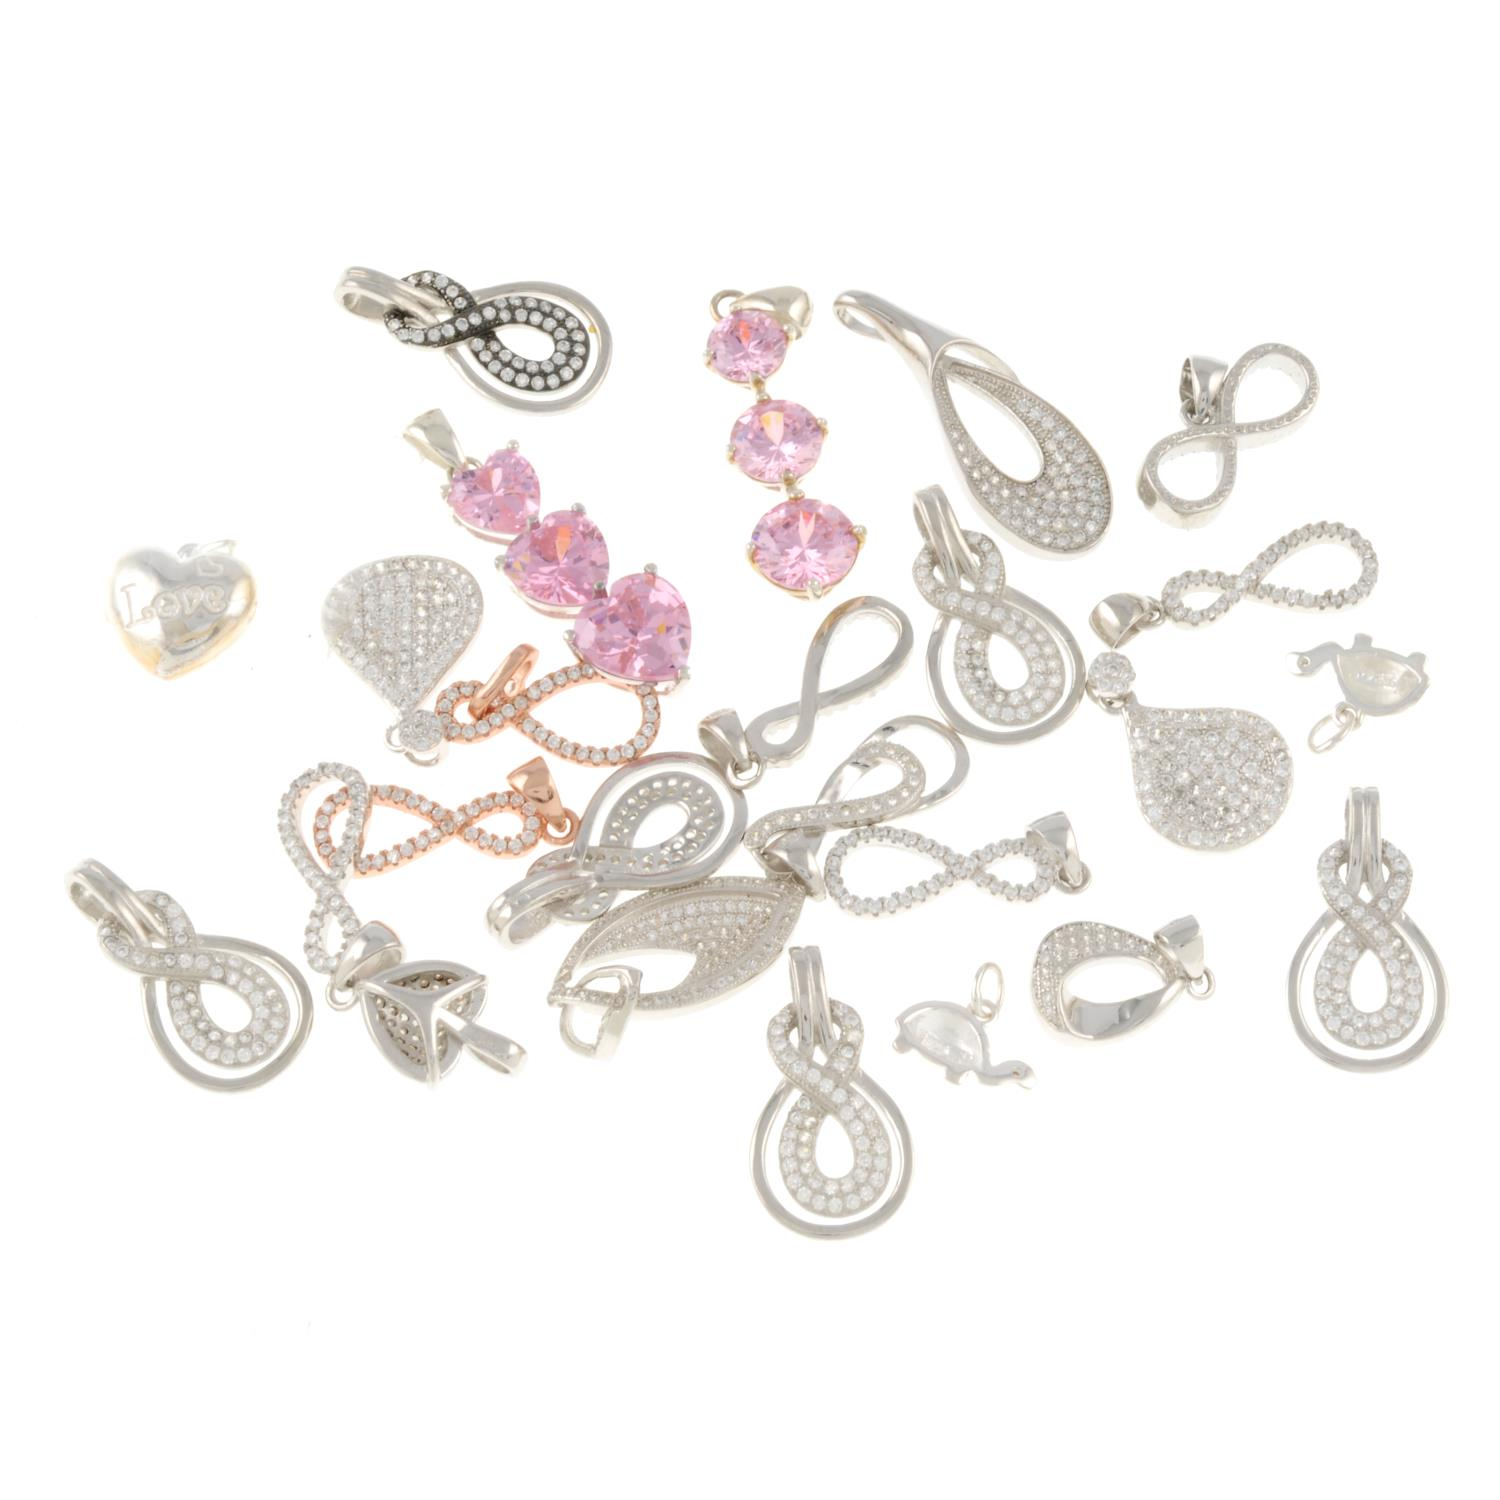 A selection of pendants, to include a pink cubic zirconia triple heart pendant. - Image 2 of 2